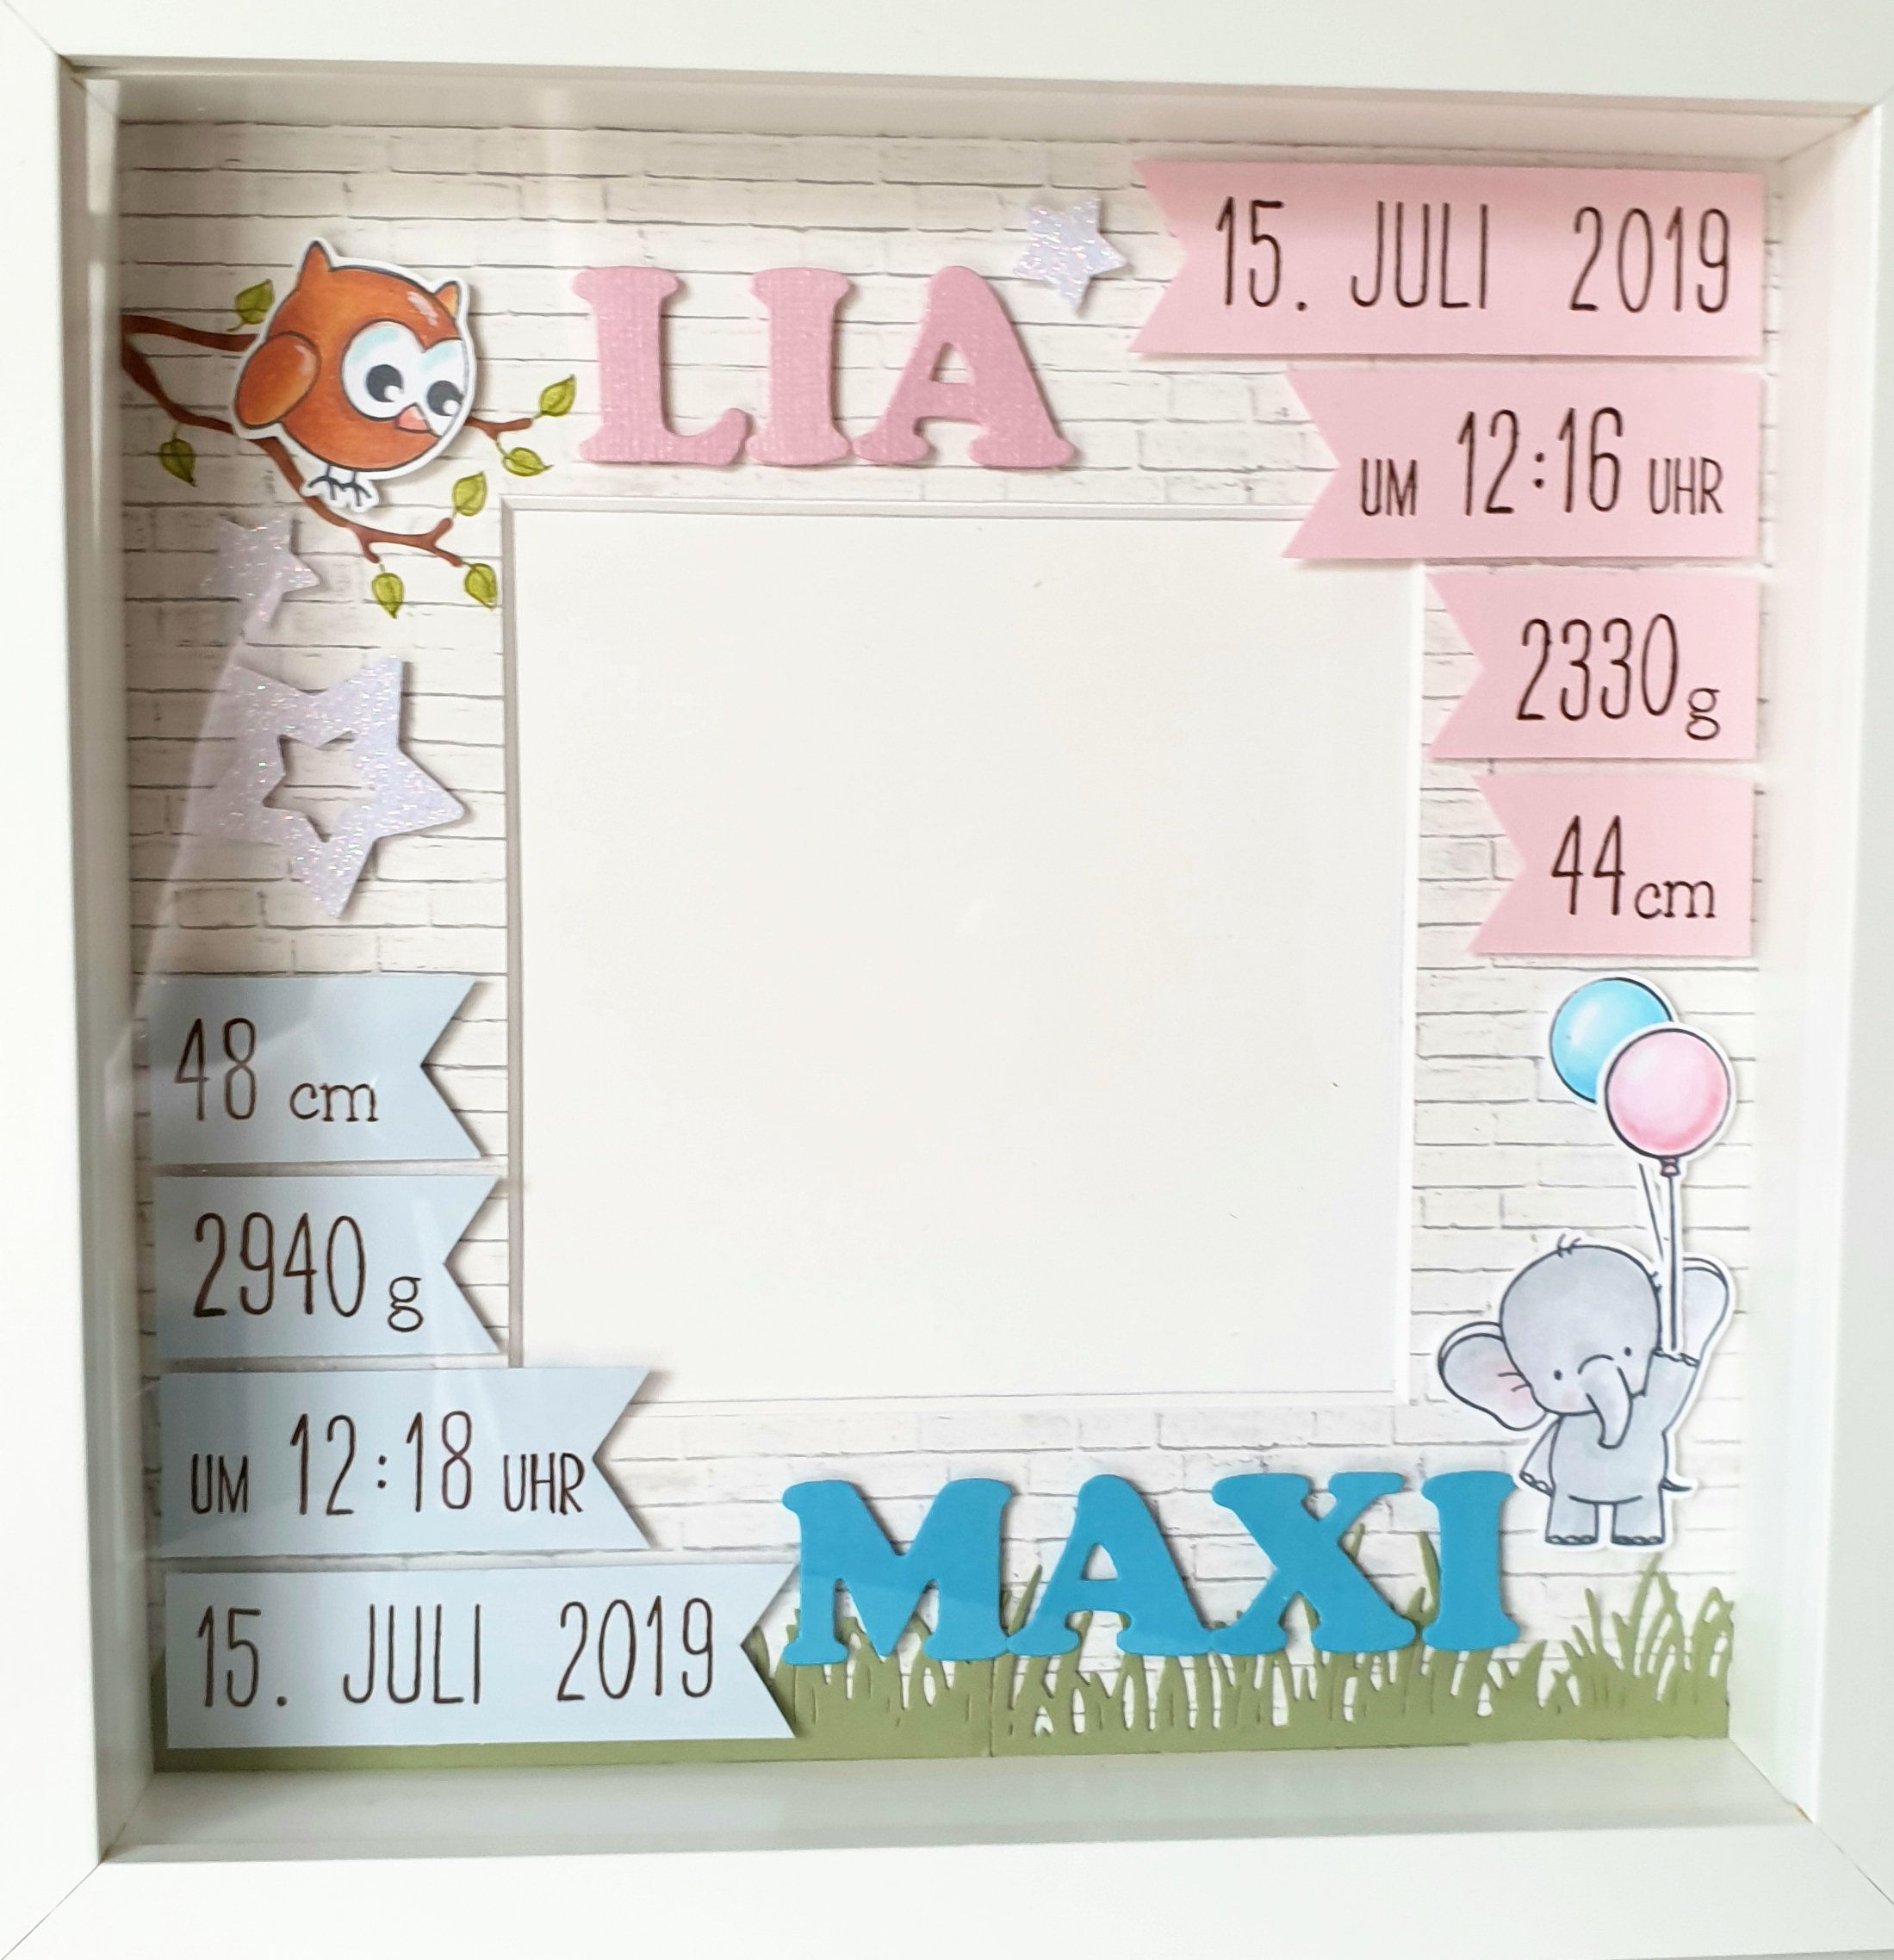 Personalized gift for the birth of twins in the frame